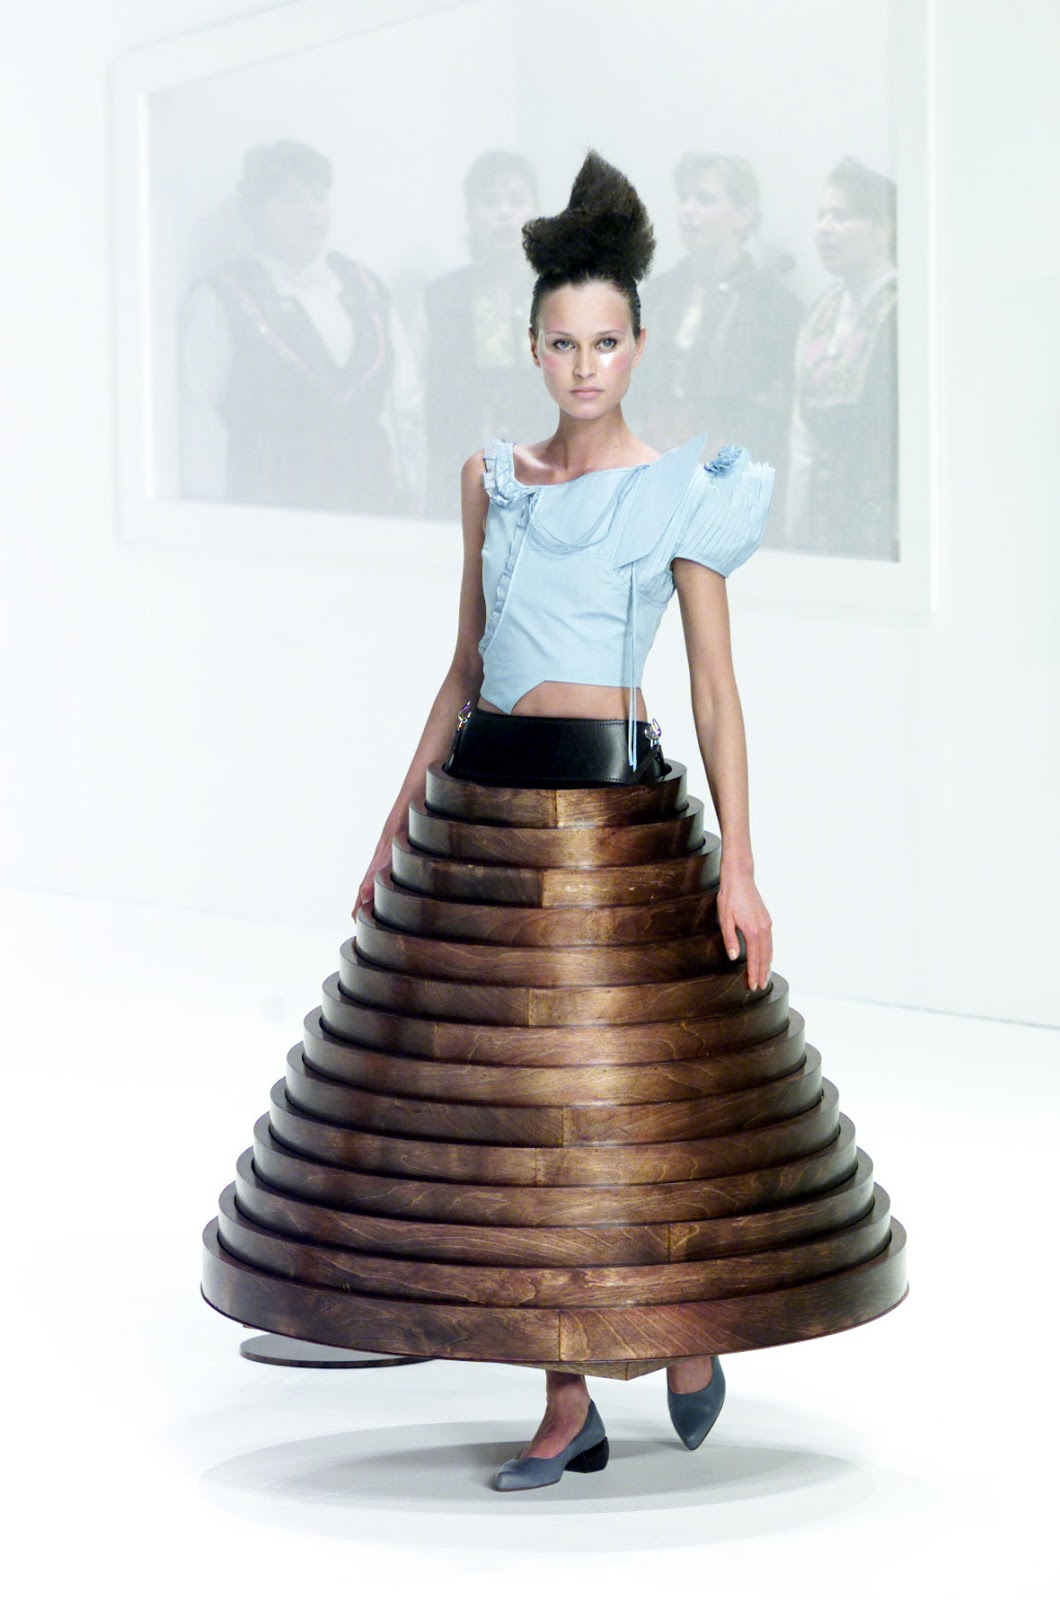 wearable object in fashion one more good one hussein chalayan afterwords collection show 2000 fall winter wooden table dress